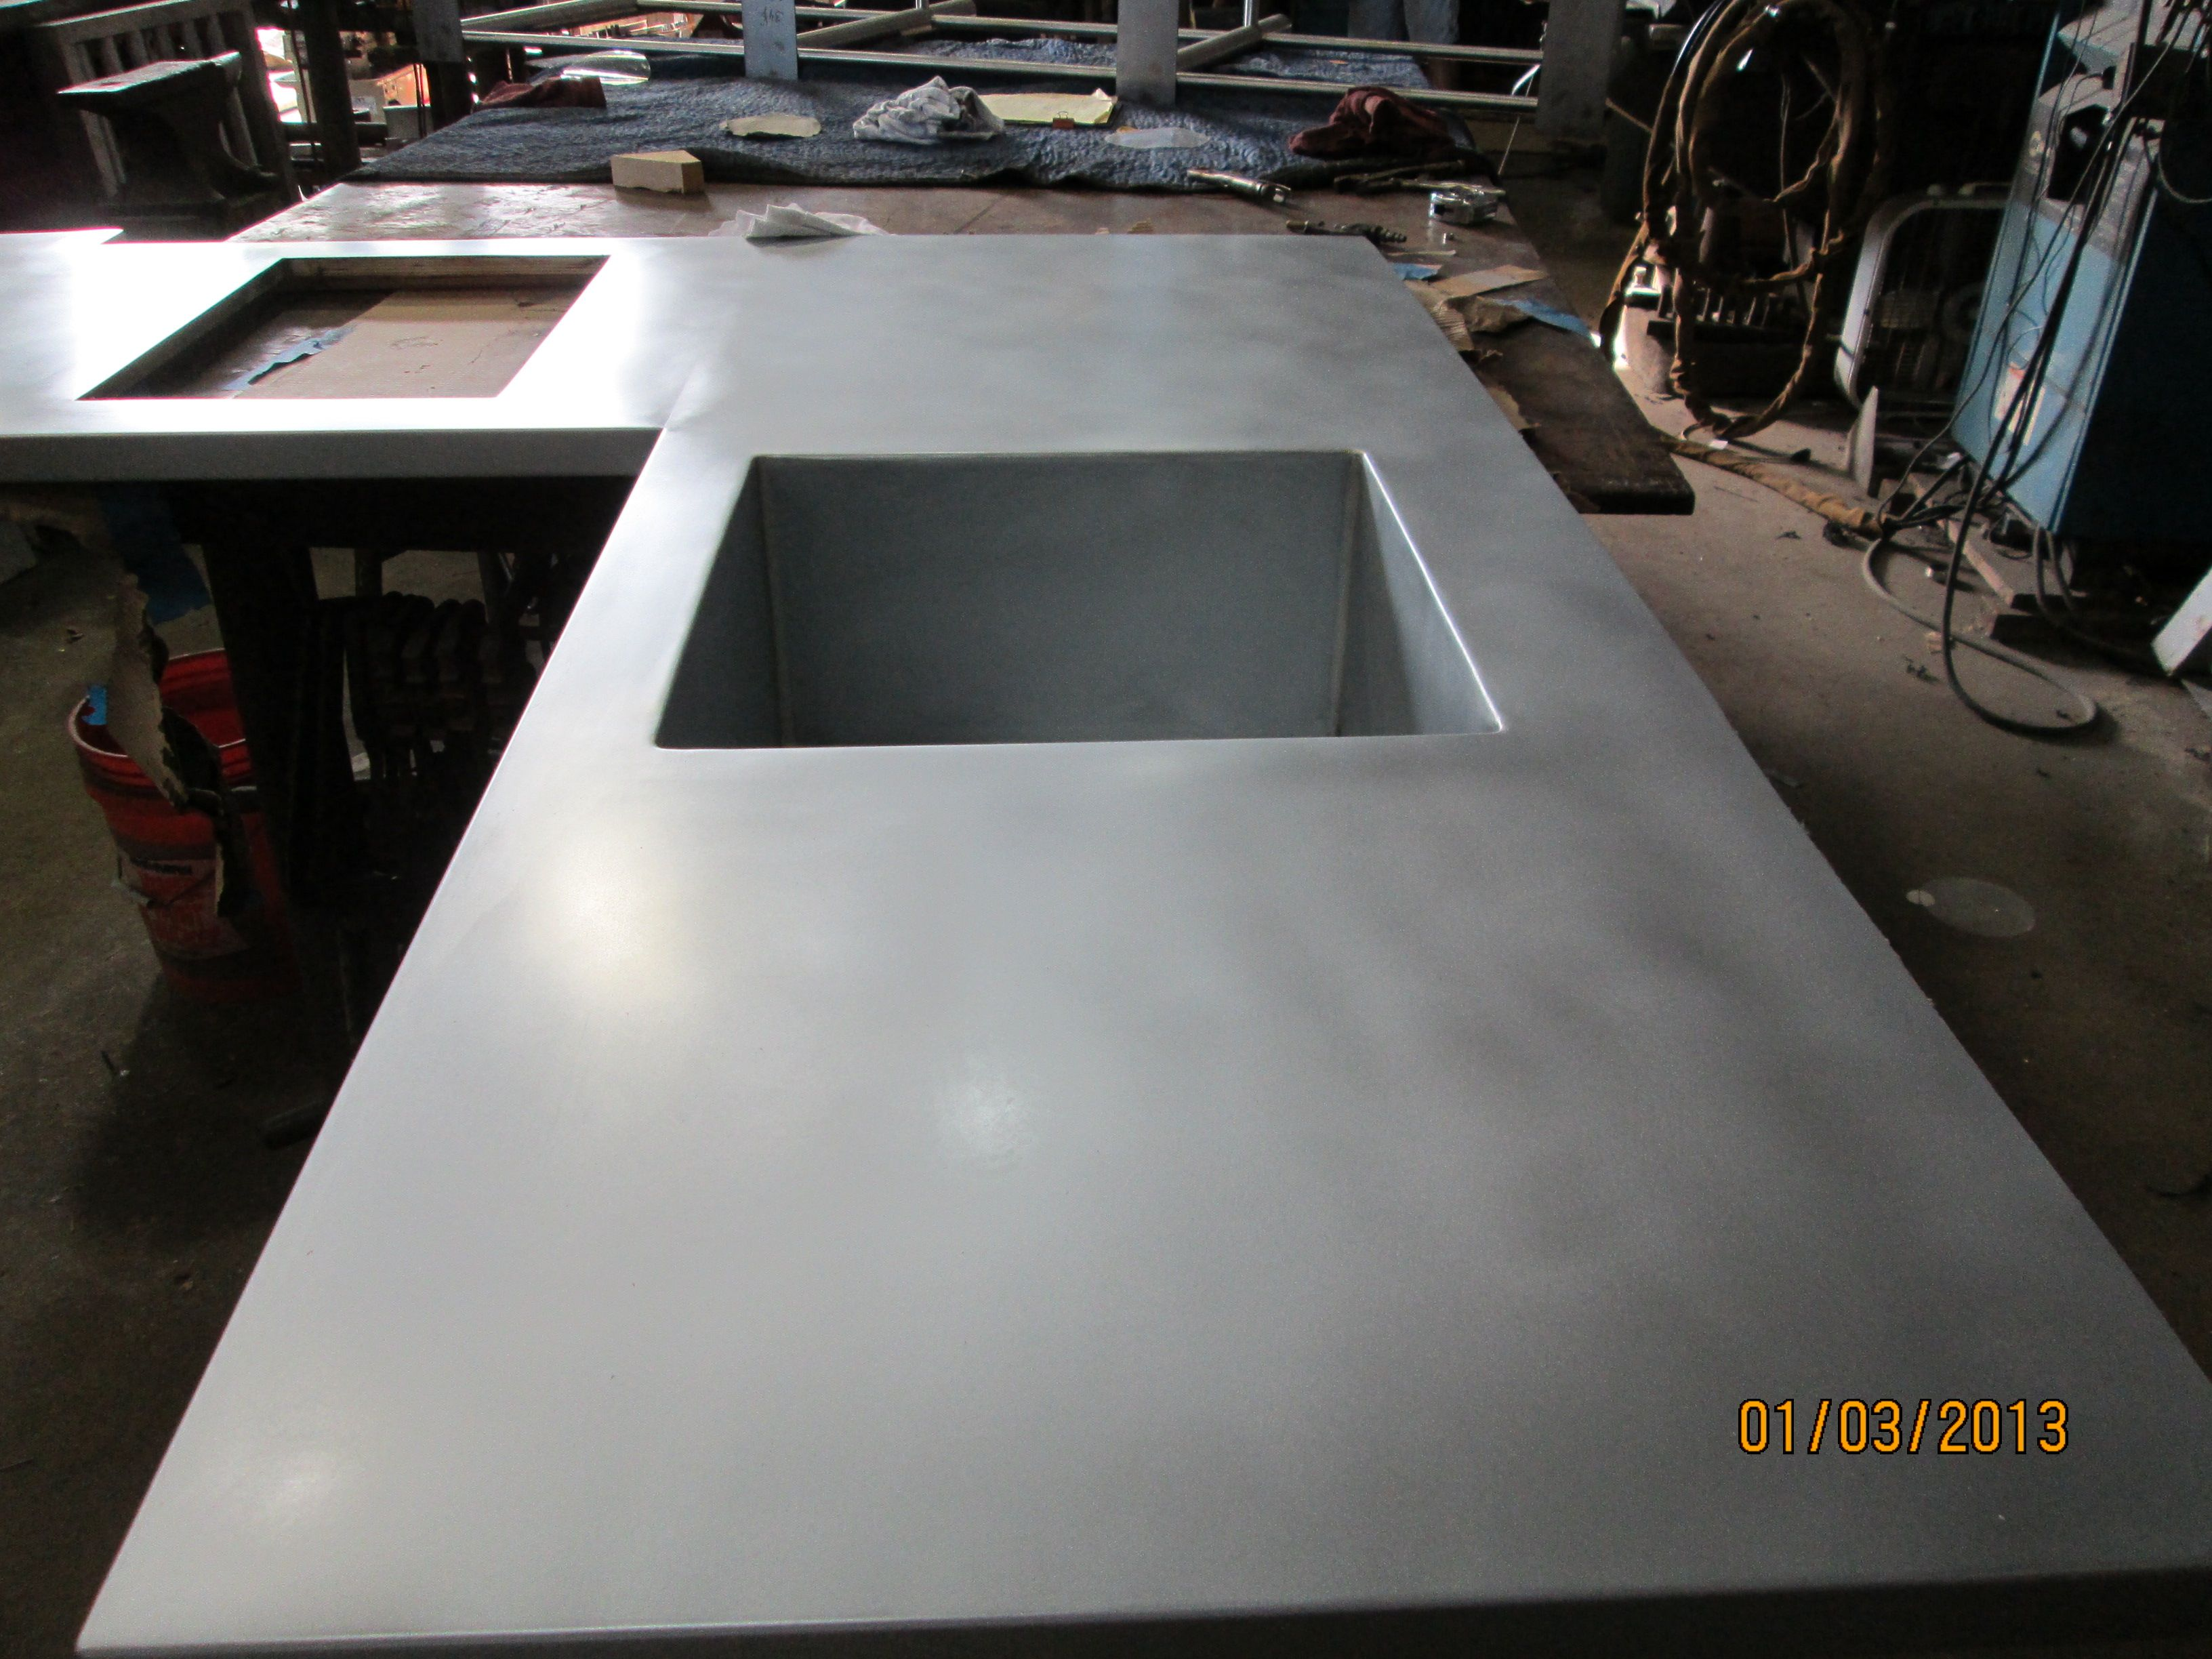 Zinc Sheets From Rotometals Perfect For Countertops Bars Kitchen Range Hoods Roofs Backslashes With Images Zinc Countertops Countertops Metal Countertops